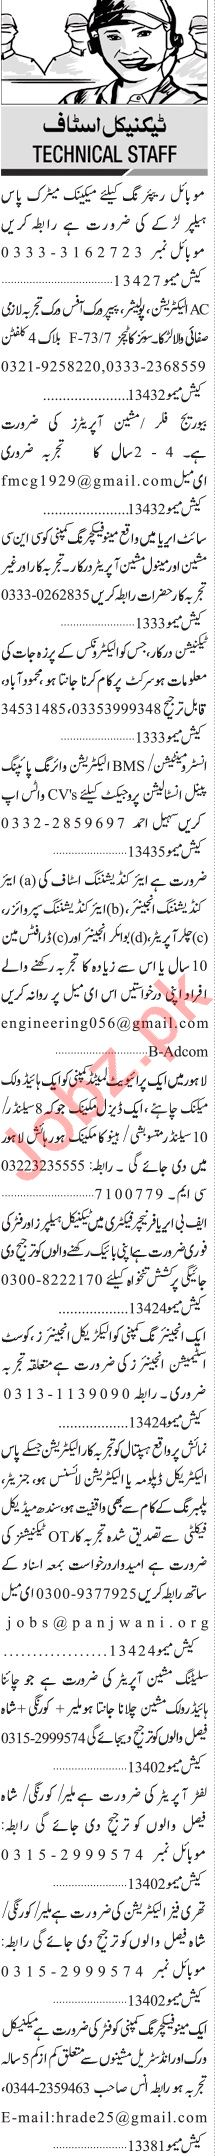 Jang Sunday Classified Ads 20 June 2021 for Technical Staff